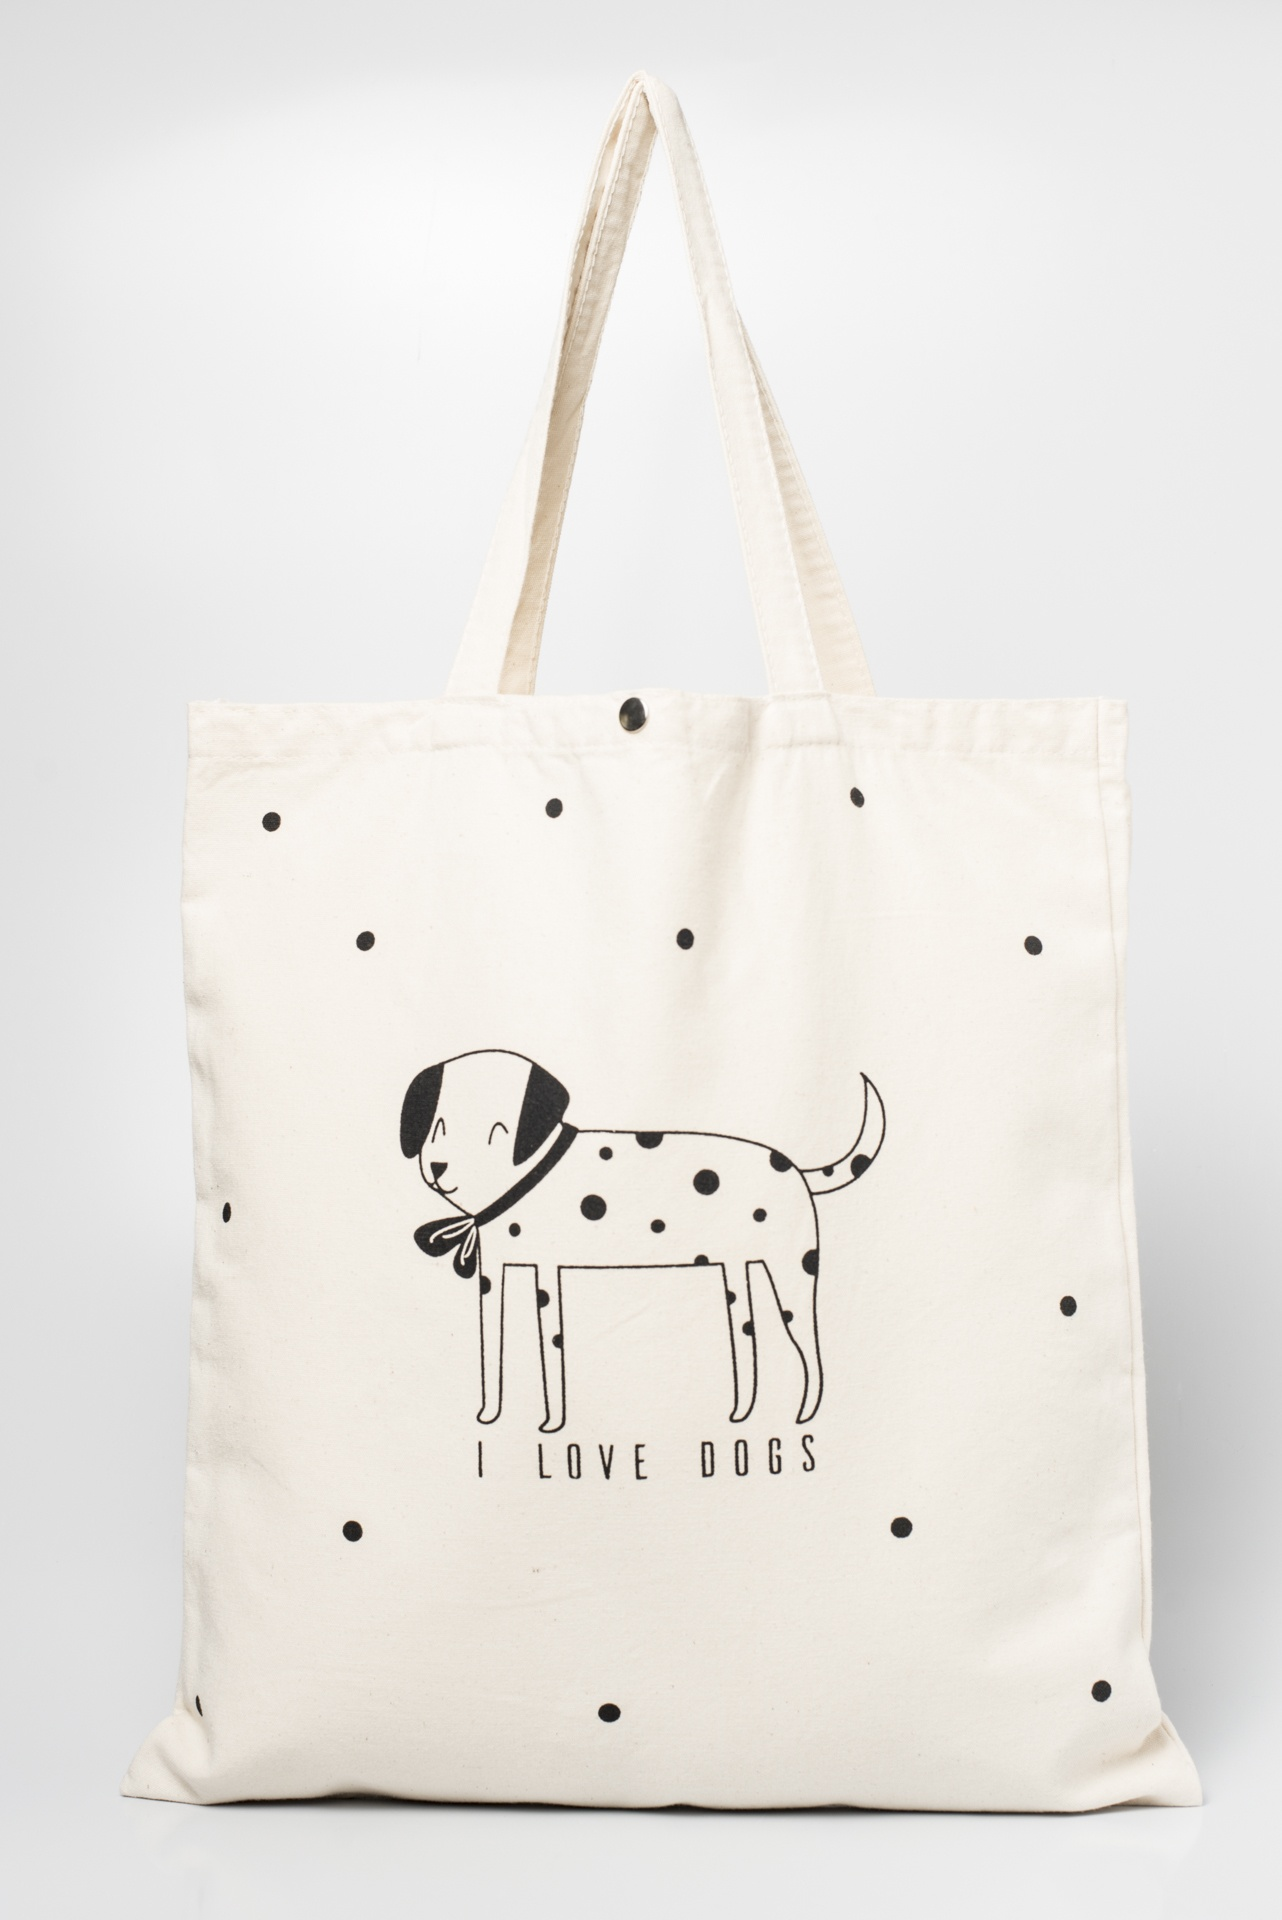 Tote Bag I Love Dogs - Felicis